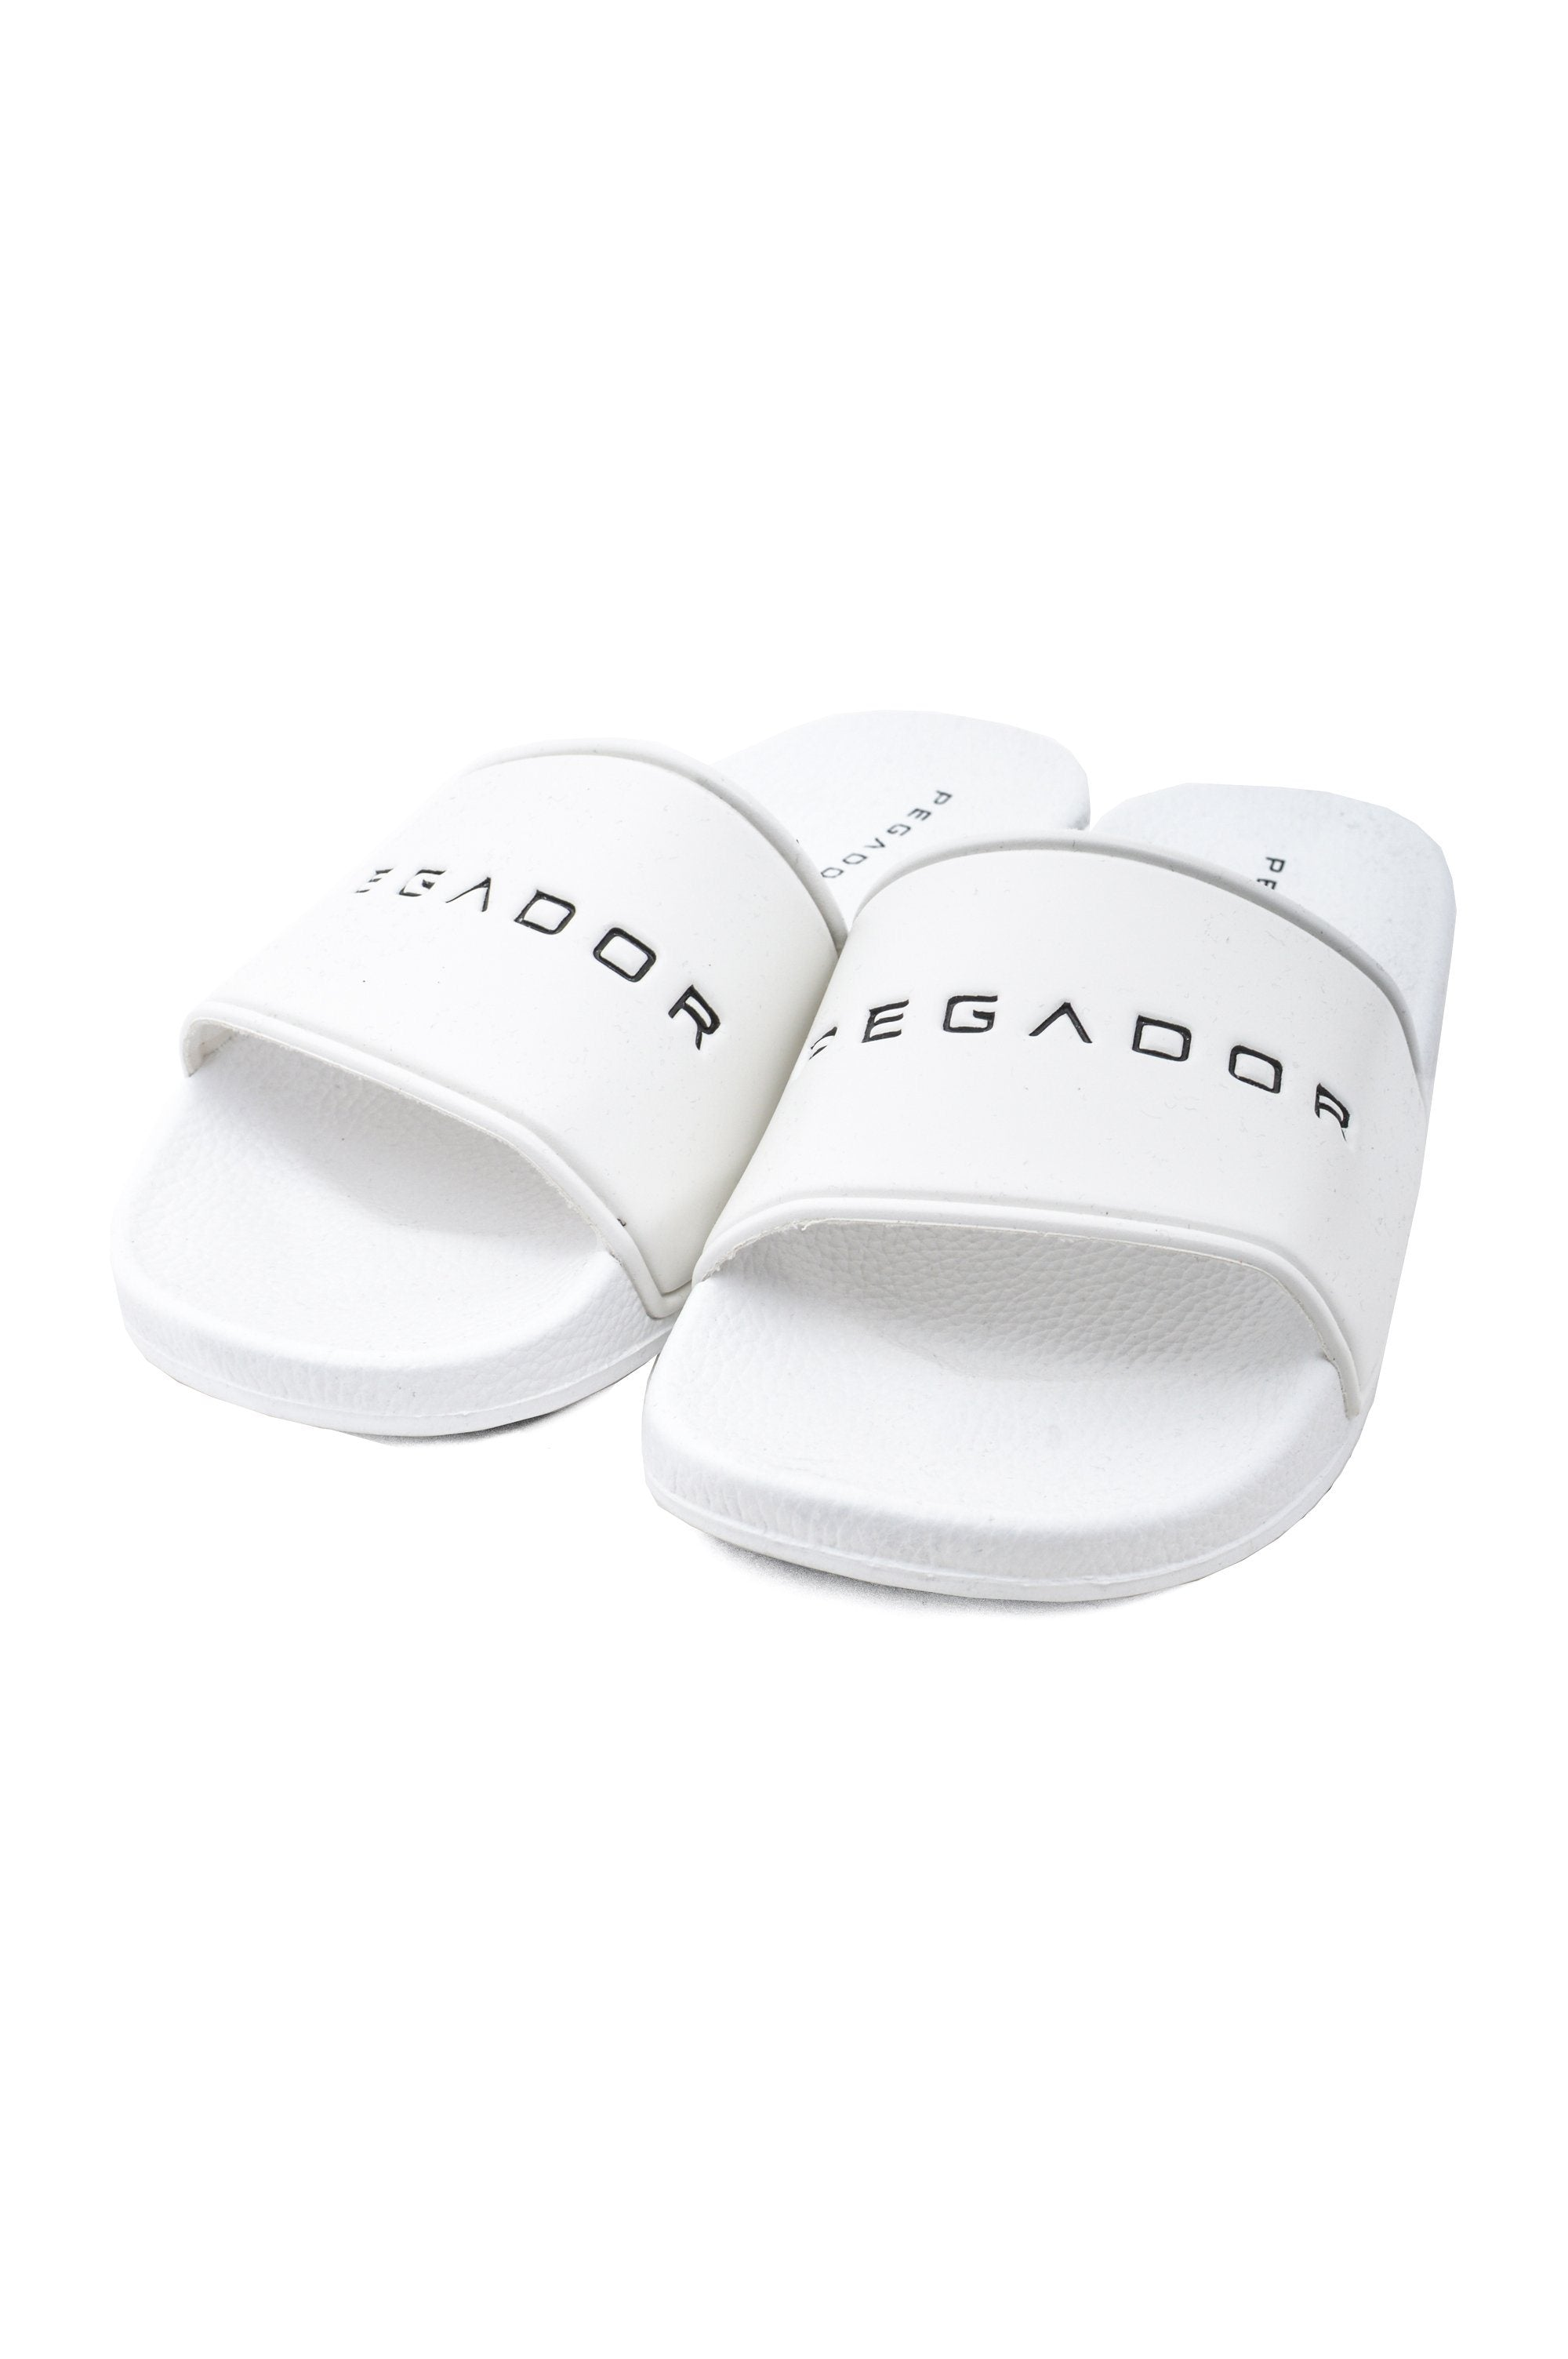 Pegador Sliders White - PEGADOR - Dominate the Hype